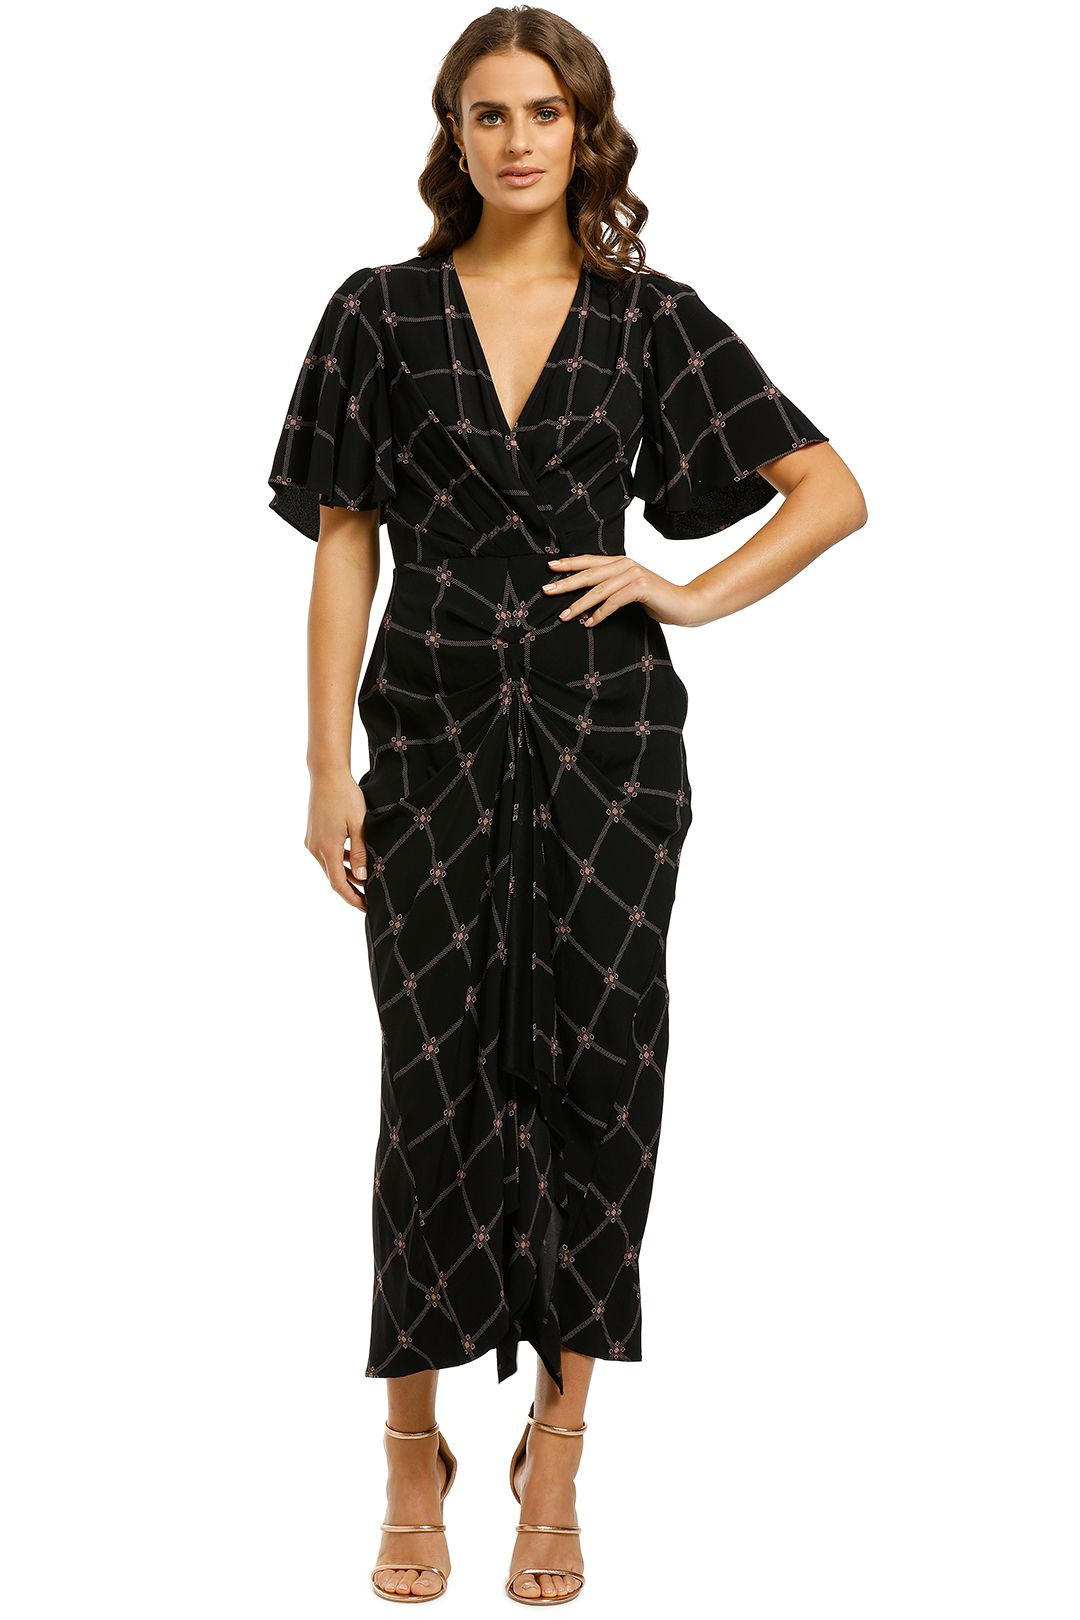 Lover-Ruby-Tuesday-Dress-Black-Front